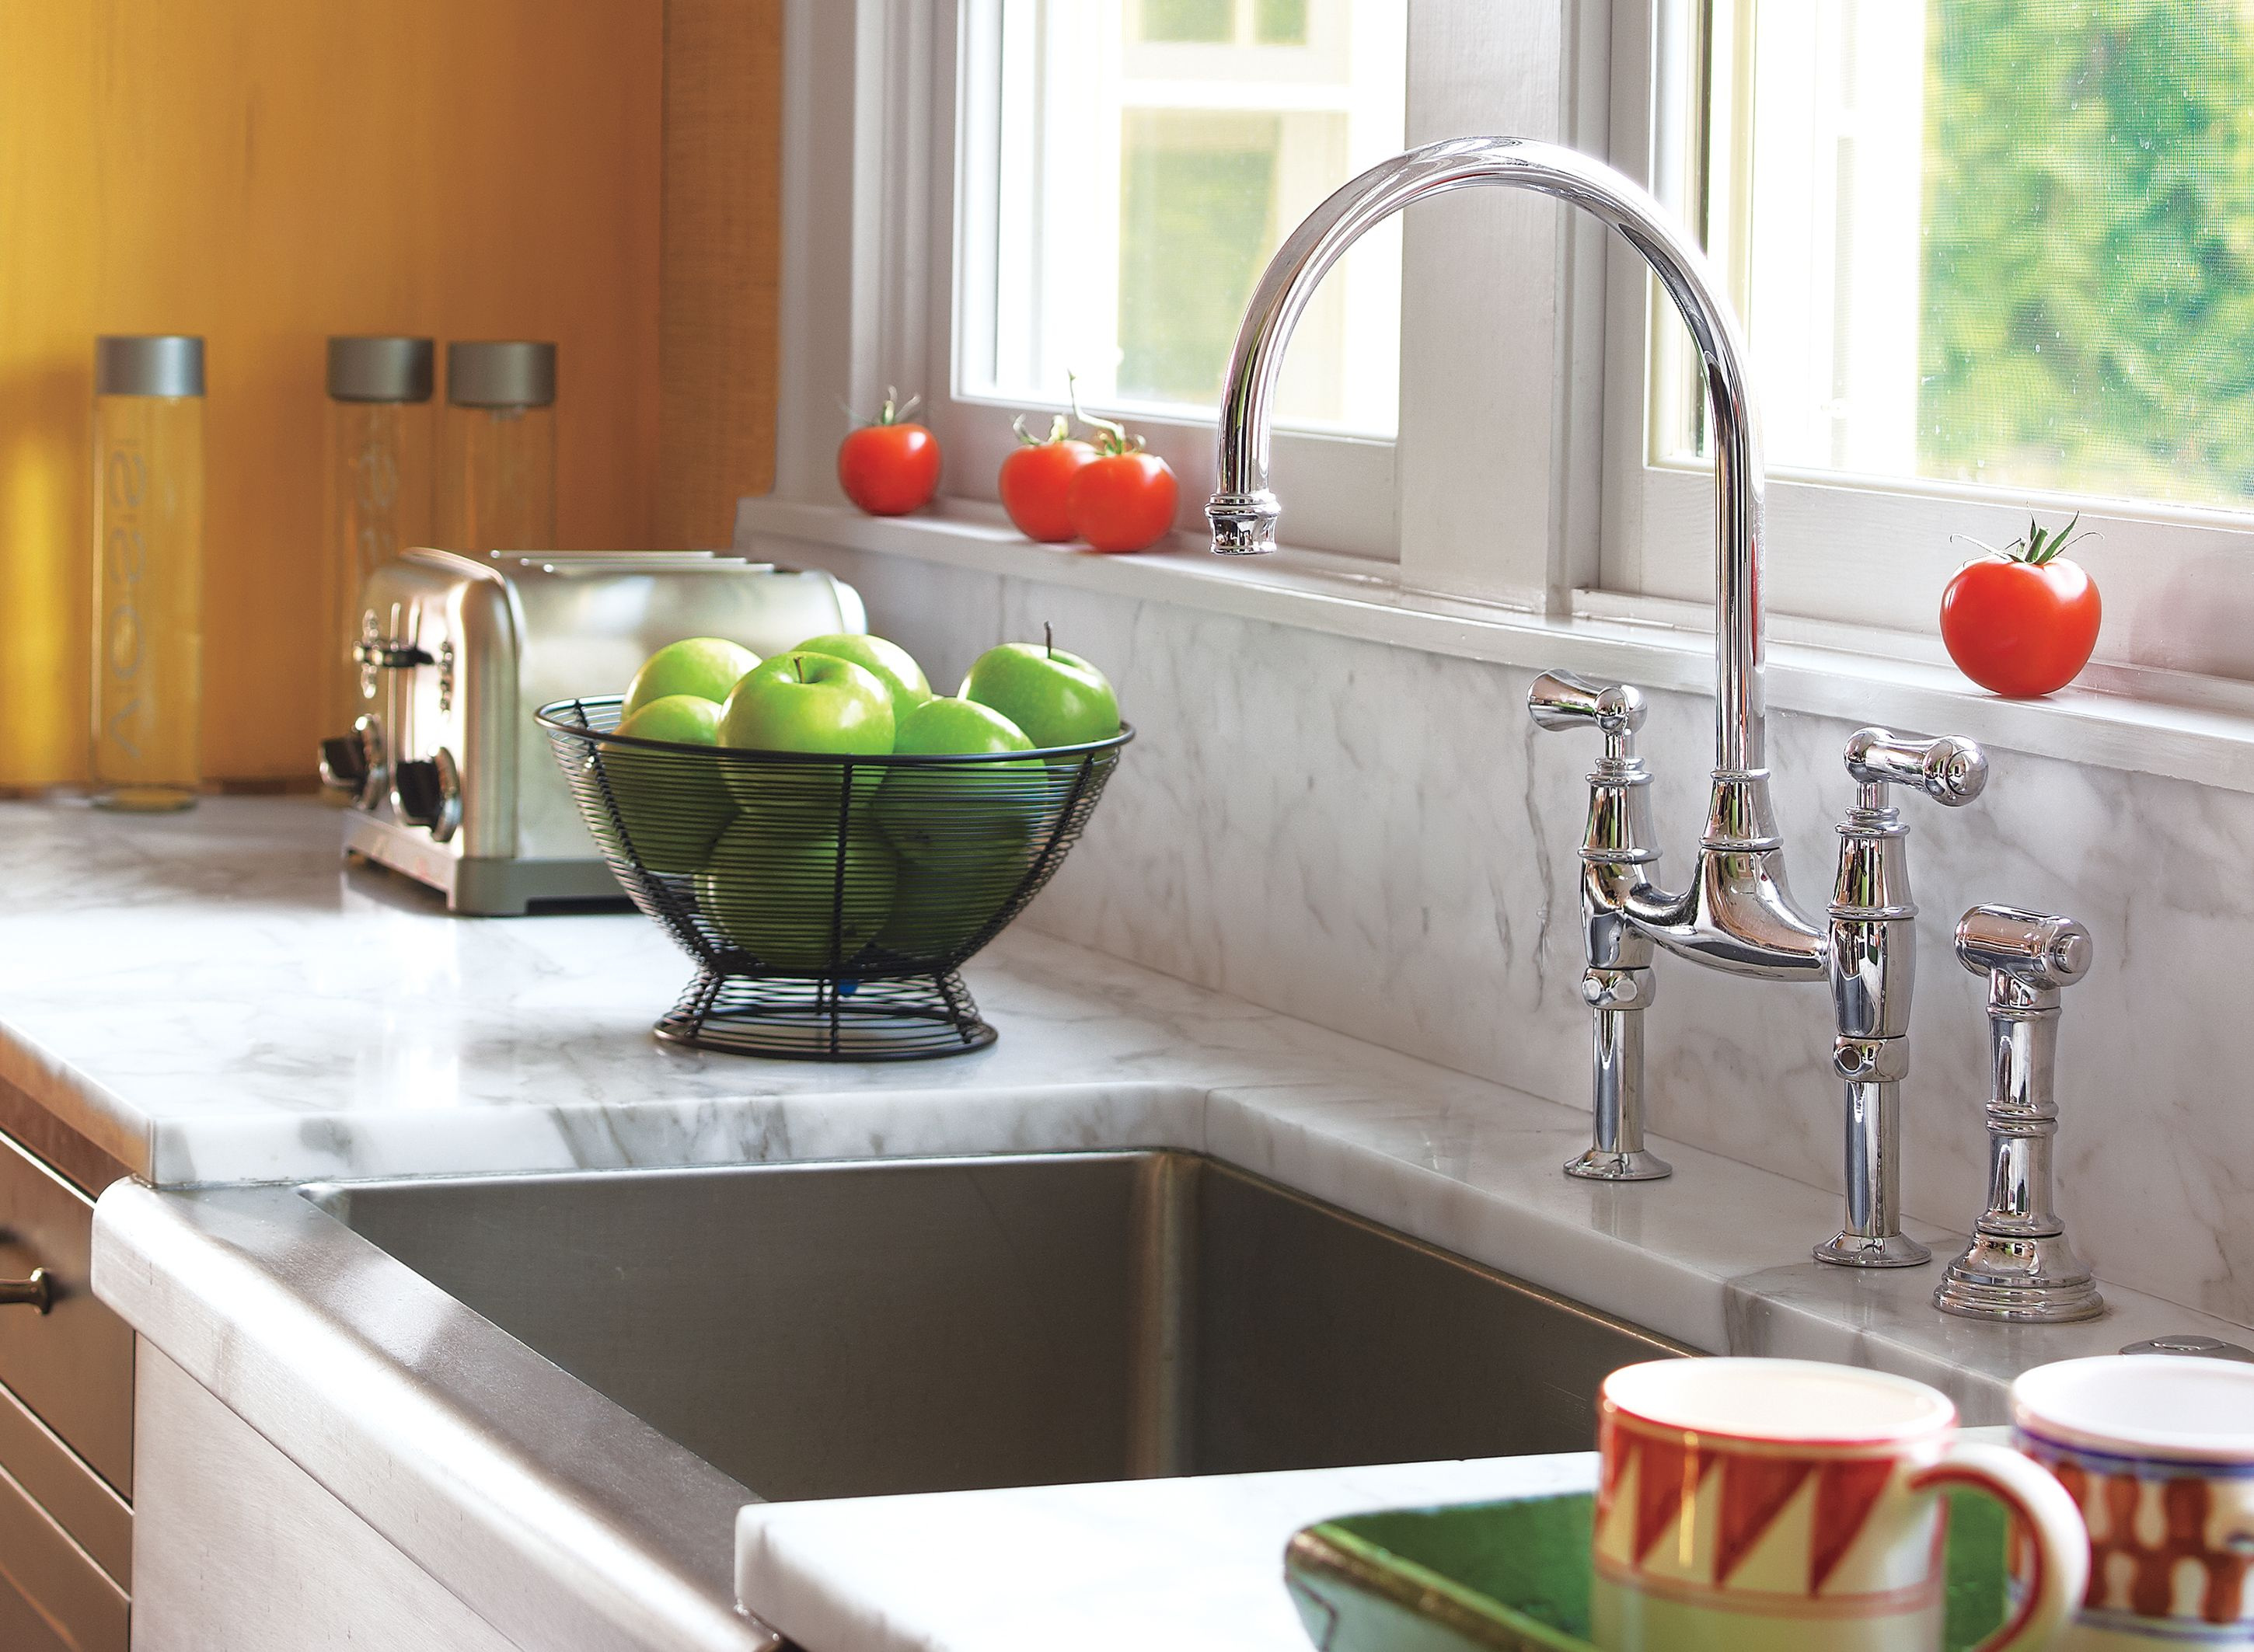 The Anatomy Of A Kitchen Faucet Kitchen Design Kitchen Sink